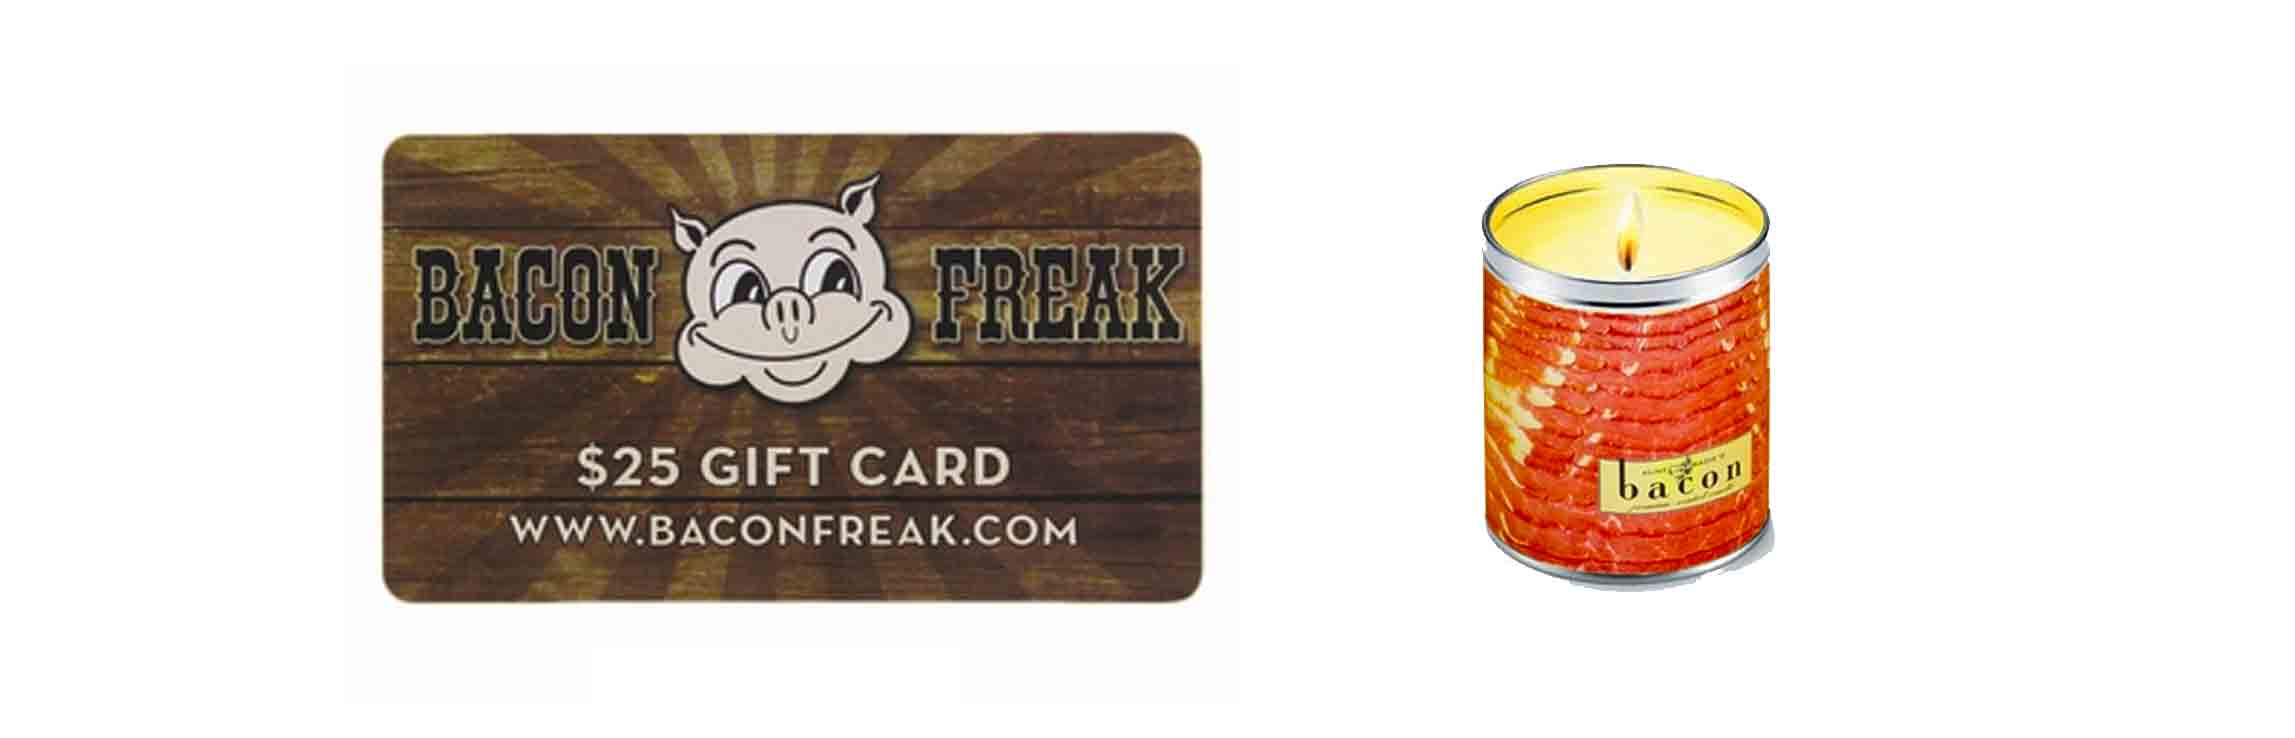 bacon-freak-candle